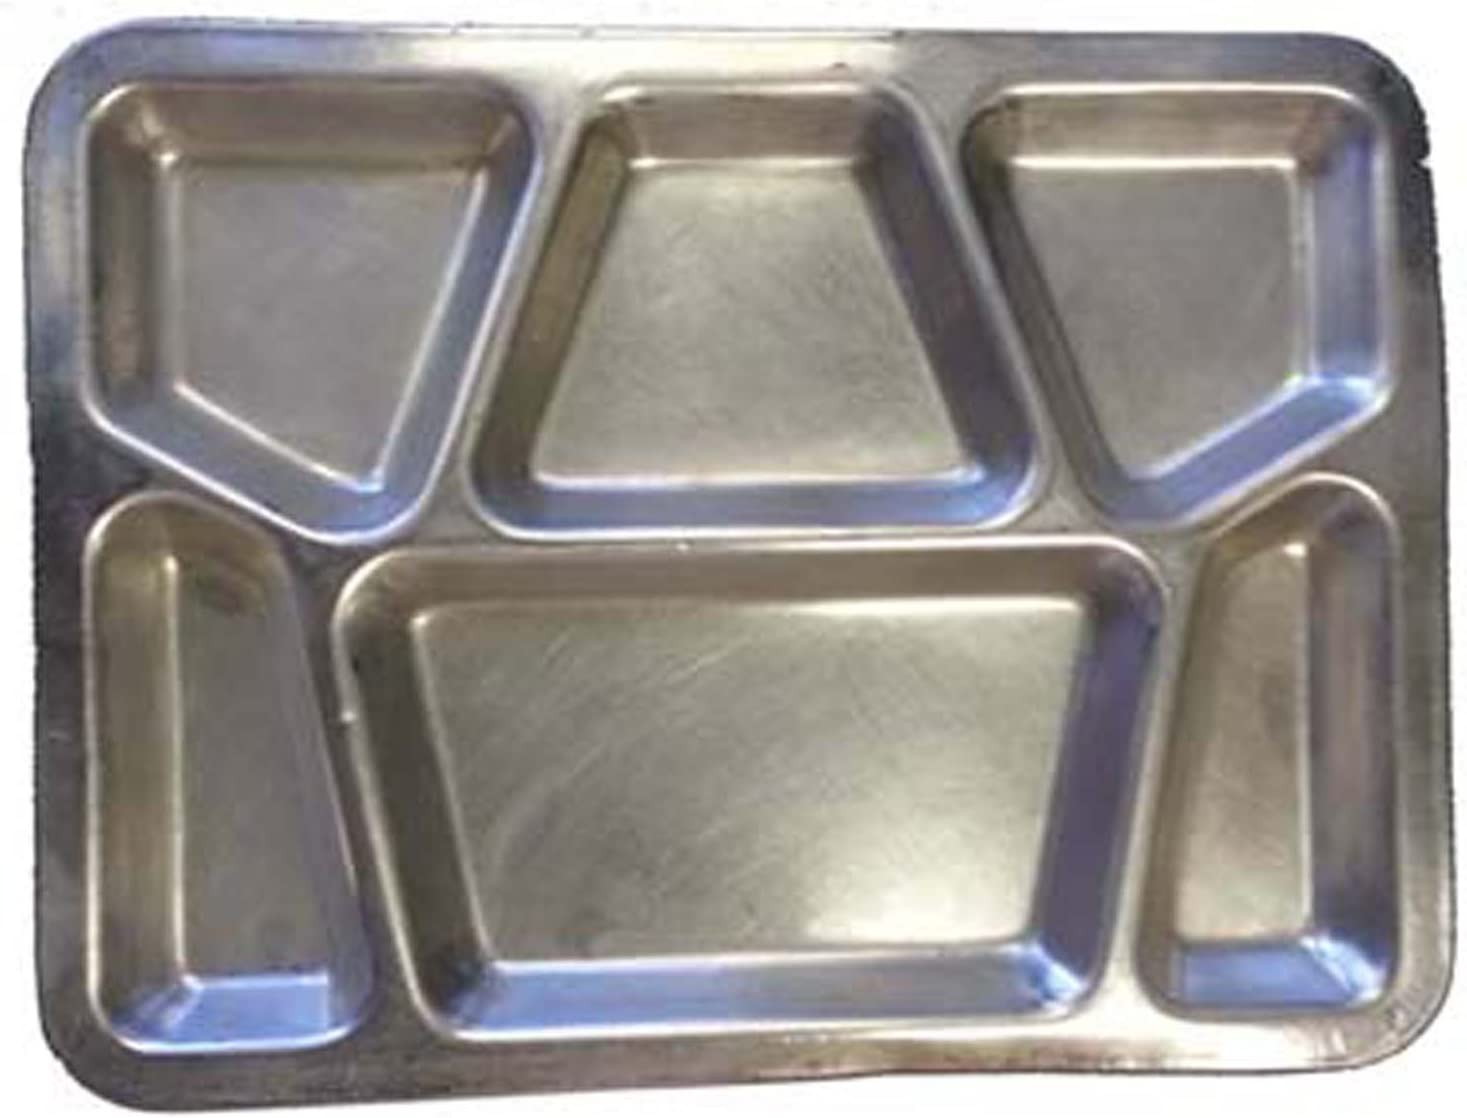 Military Outdoor Clothing Previously Issued U.S. G.I. Stainless Steel Military Mess Tray with 6 Compartments